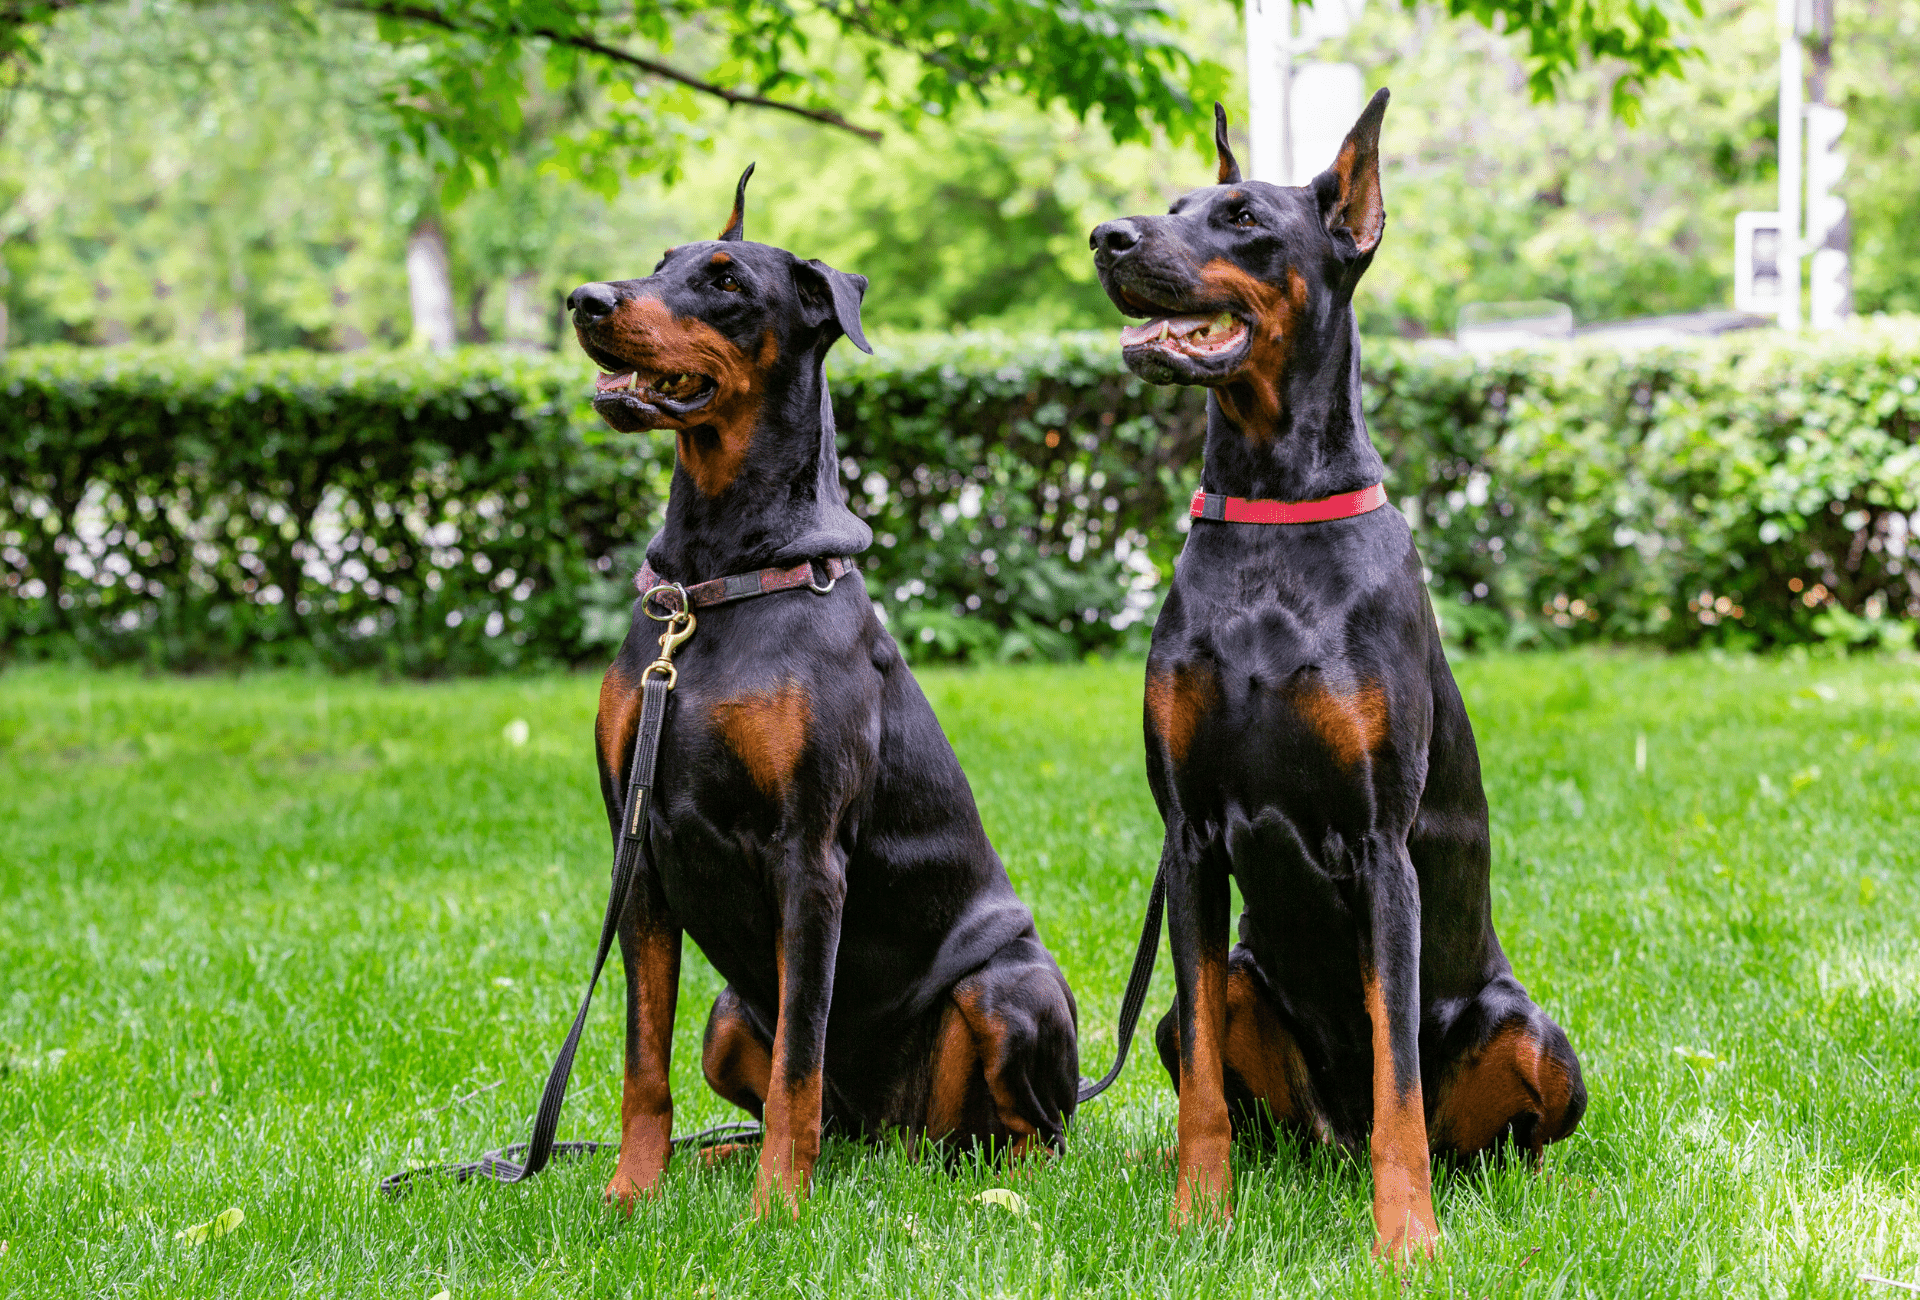 Two black Dobermans with rust and tan markings sitting next to each other